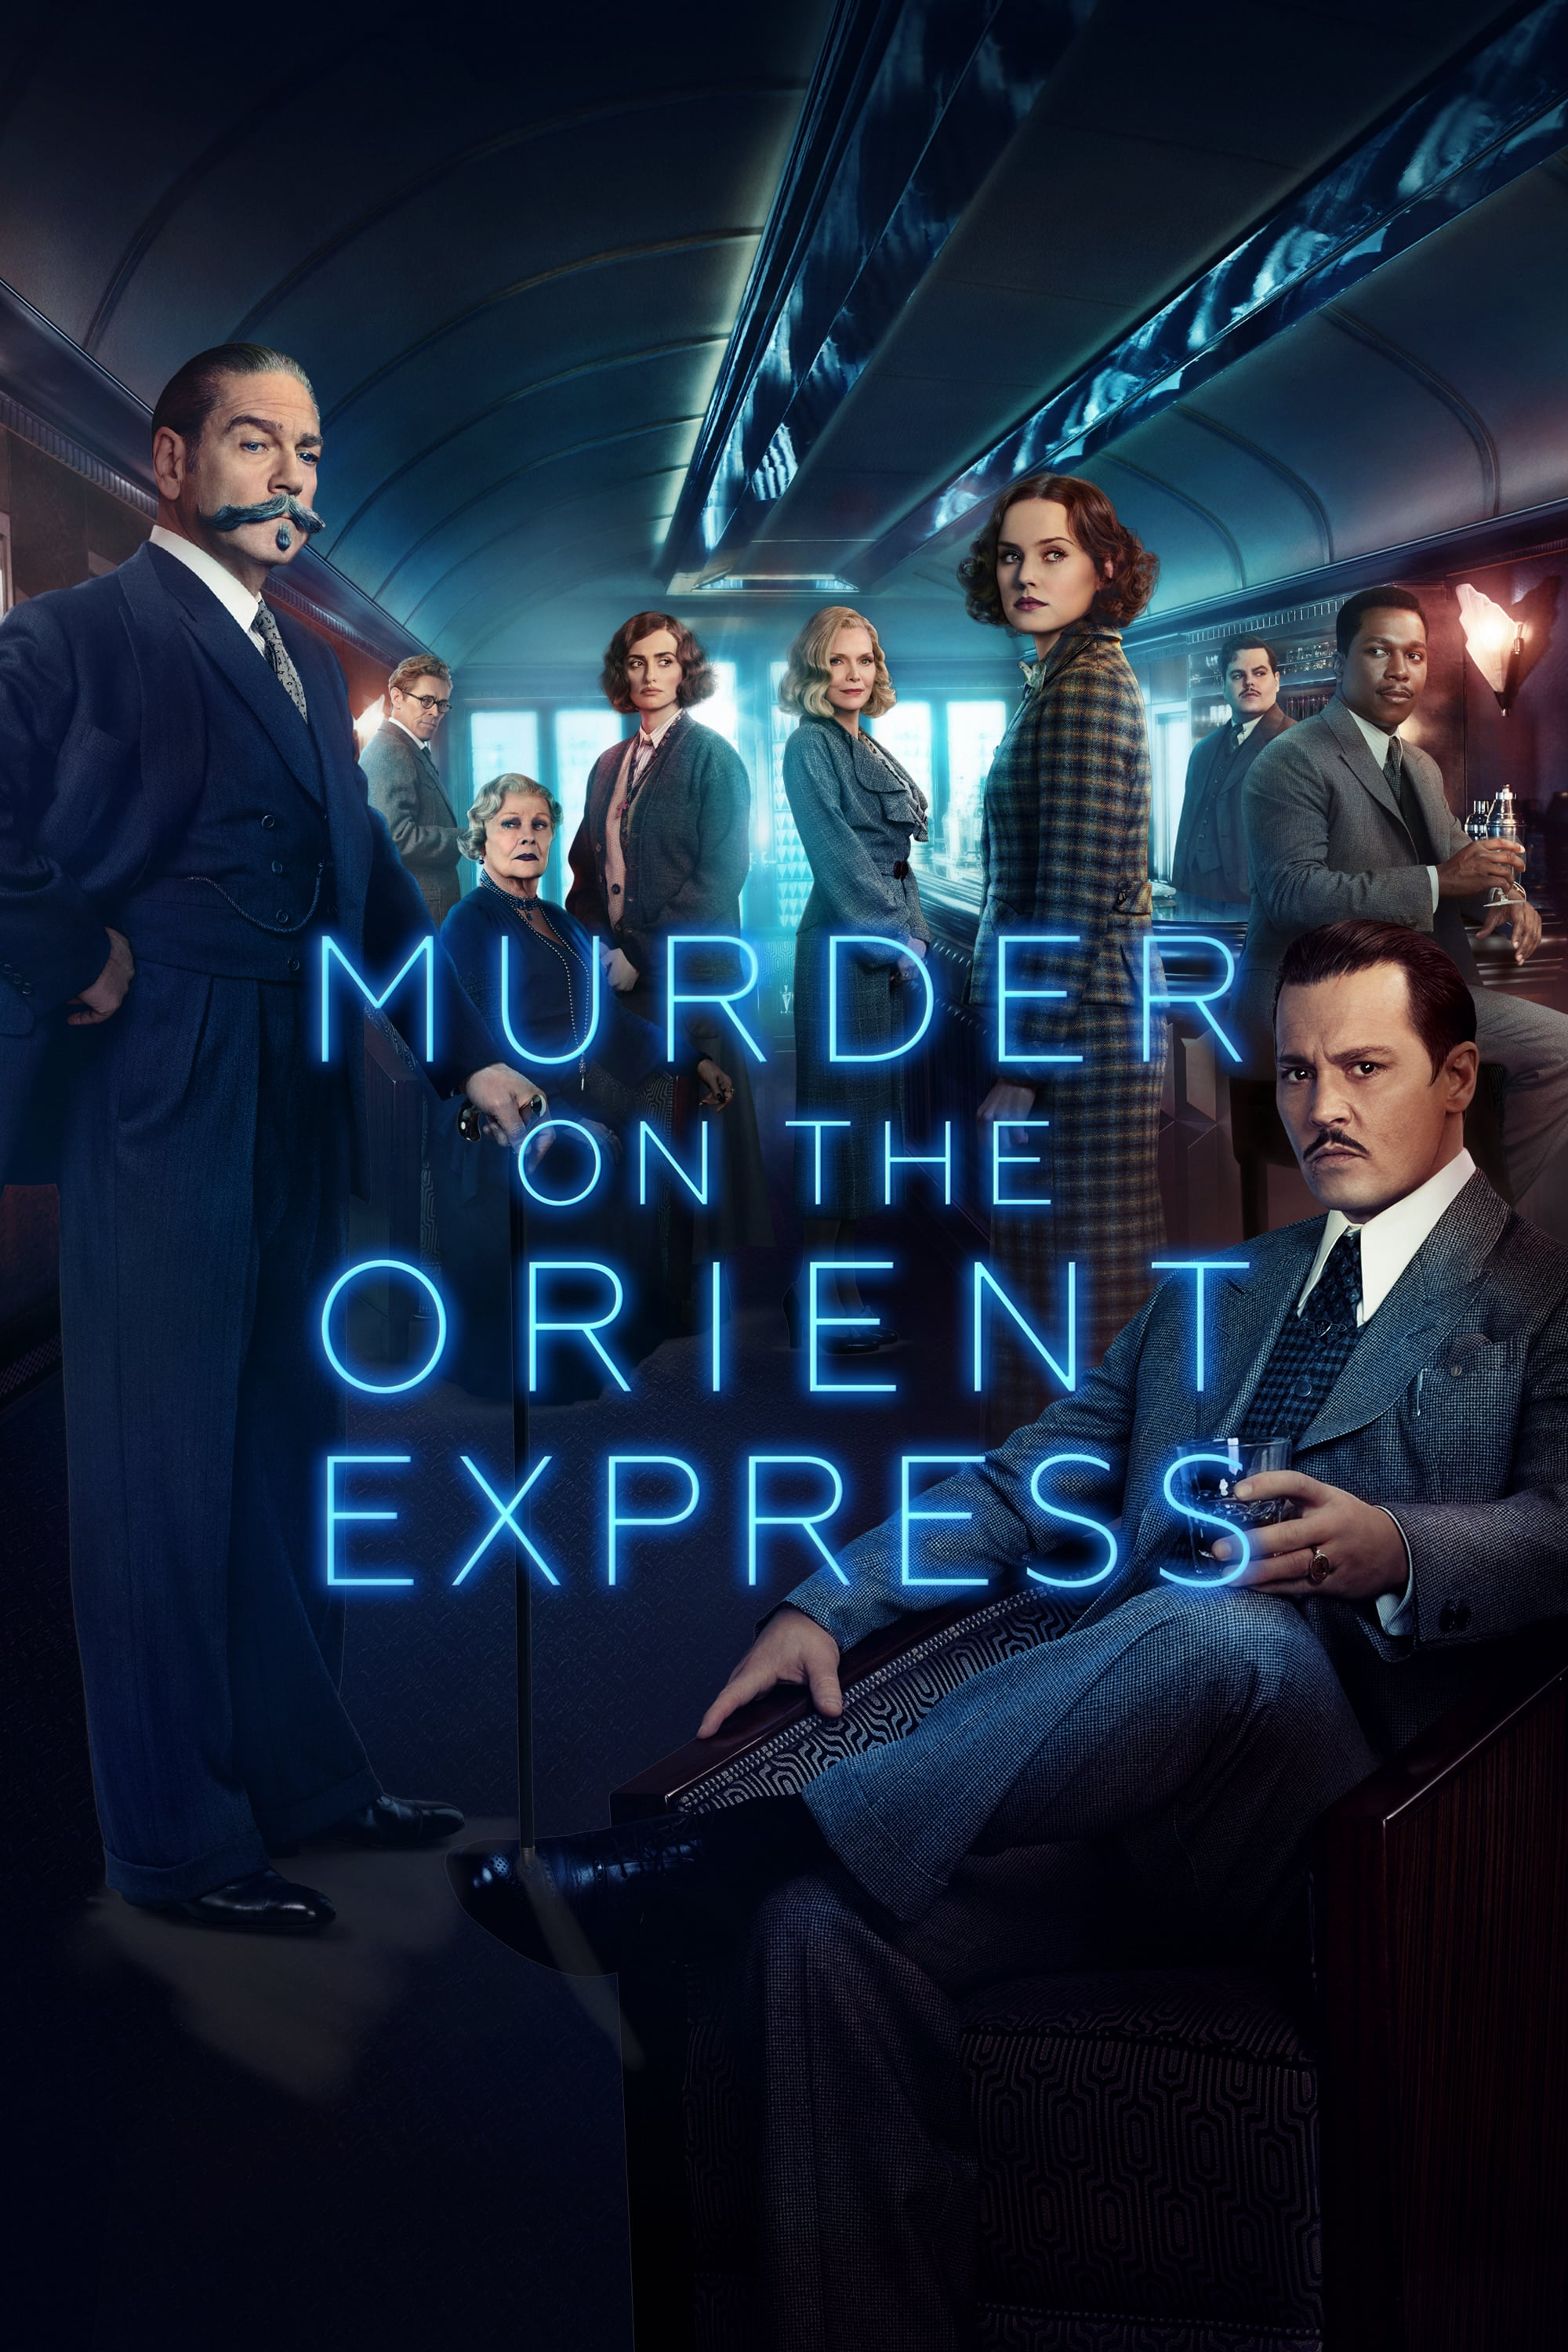 Murder on the Orient Express (2017): Why?